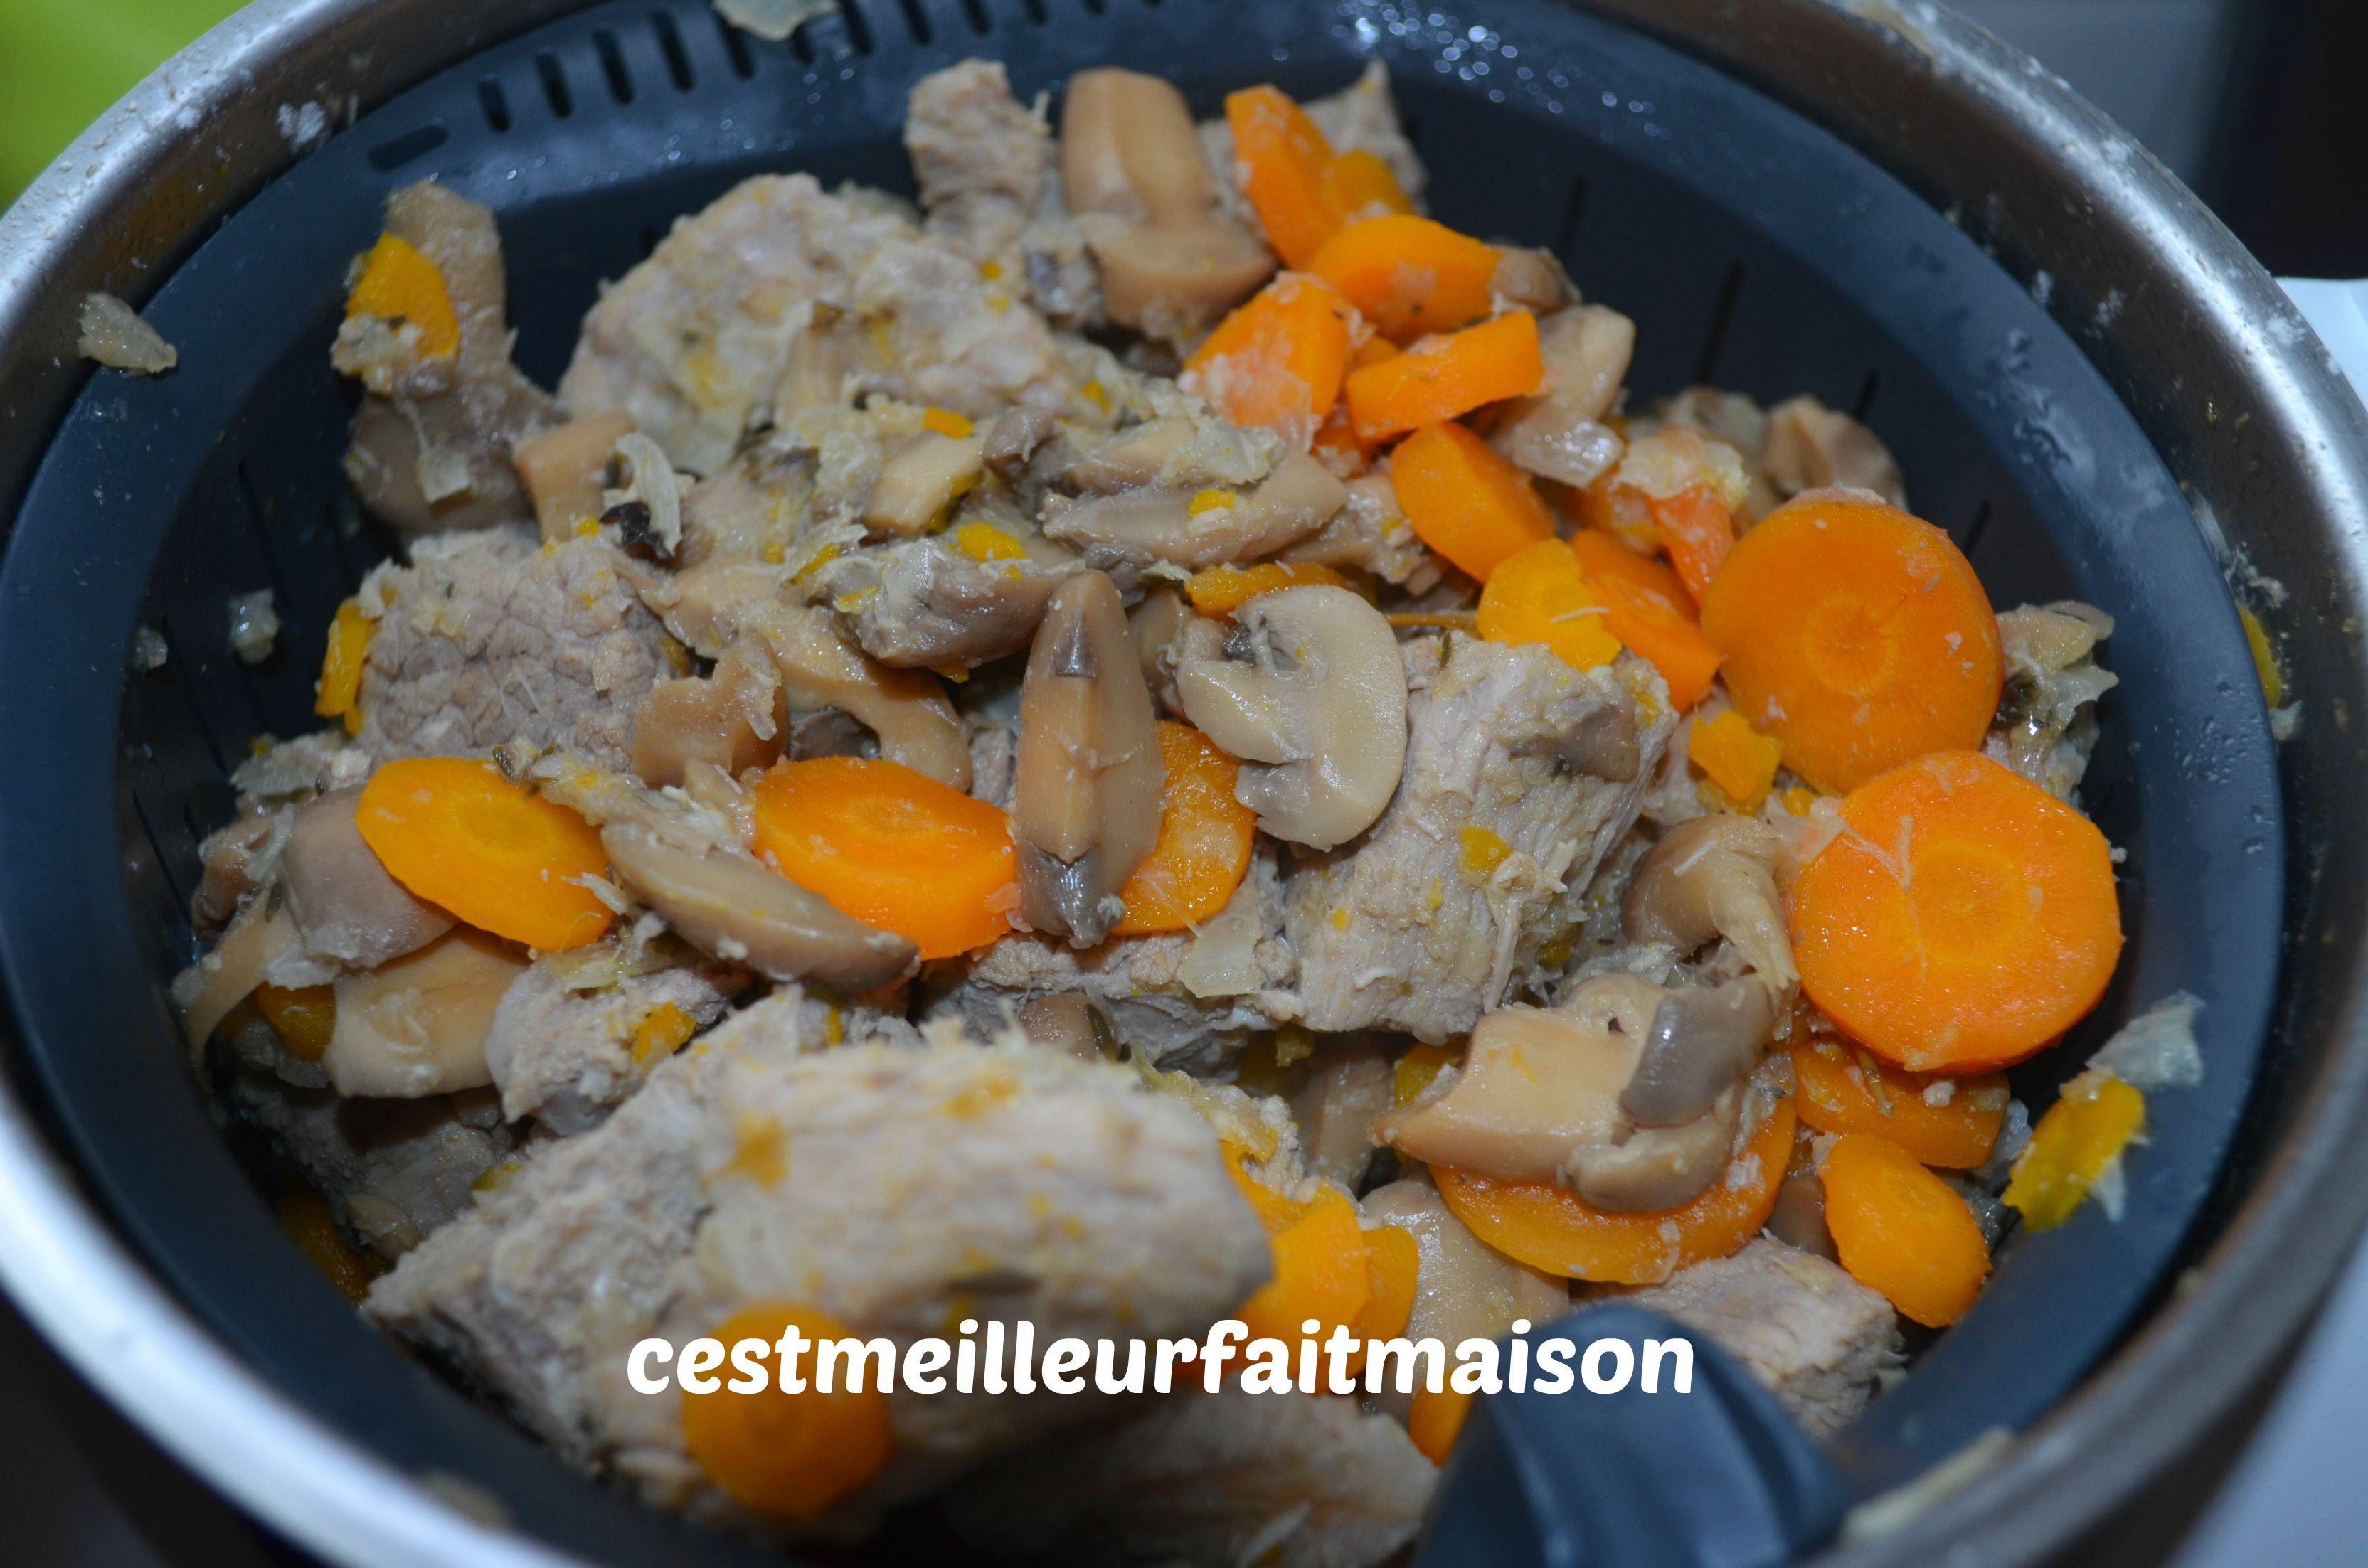 blanquette de veau au thermomix c 39 est meilleur fait maison. Black Bedroom Furniture Sets. Home Design Ideas